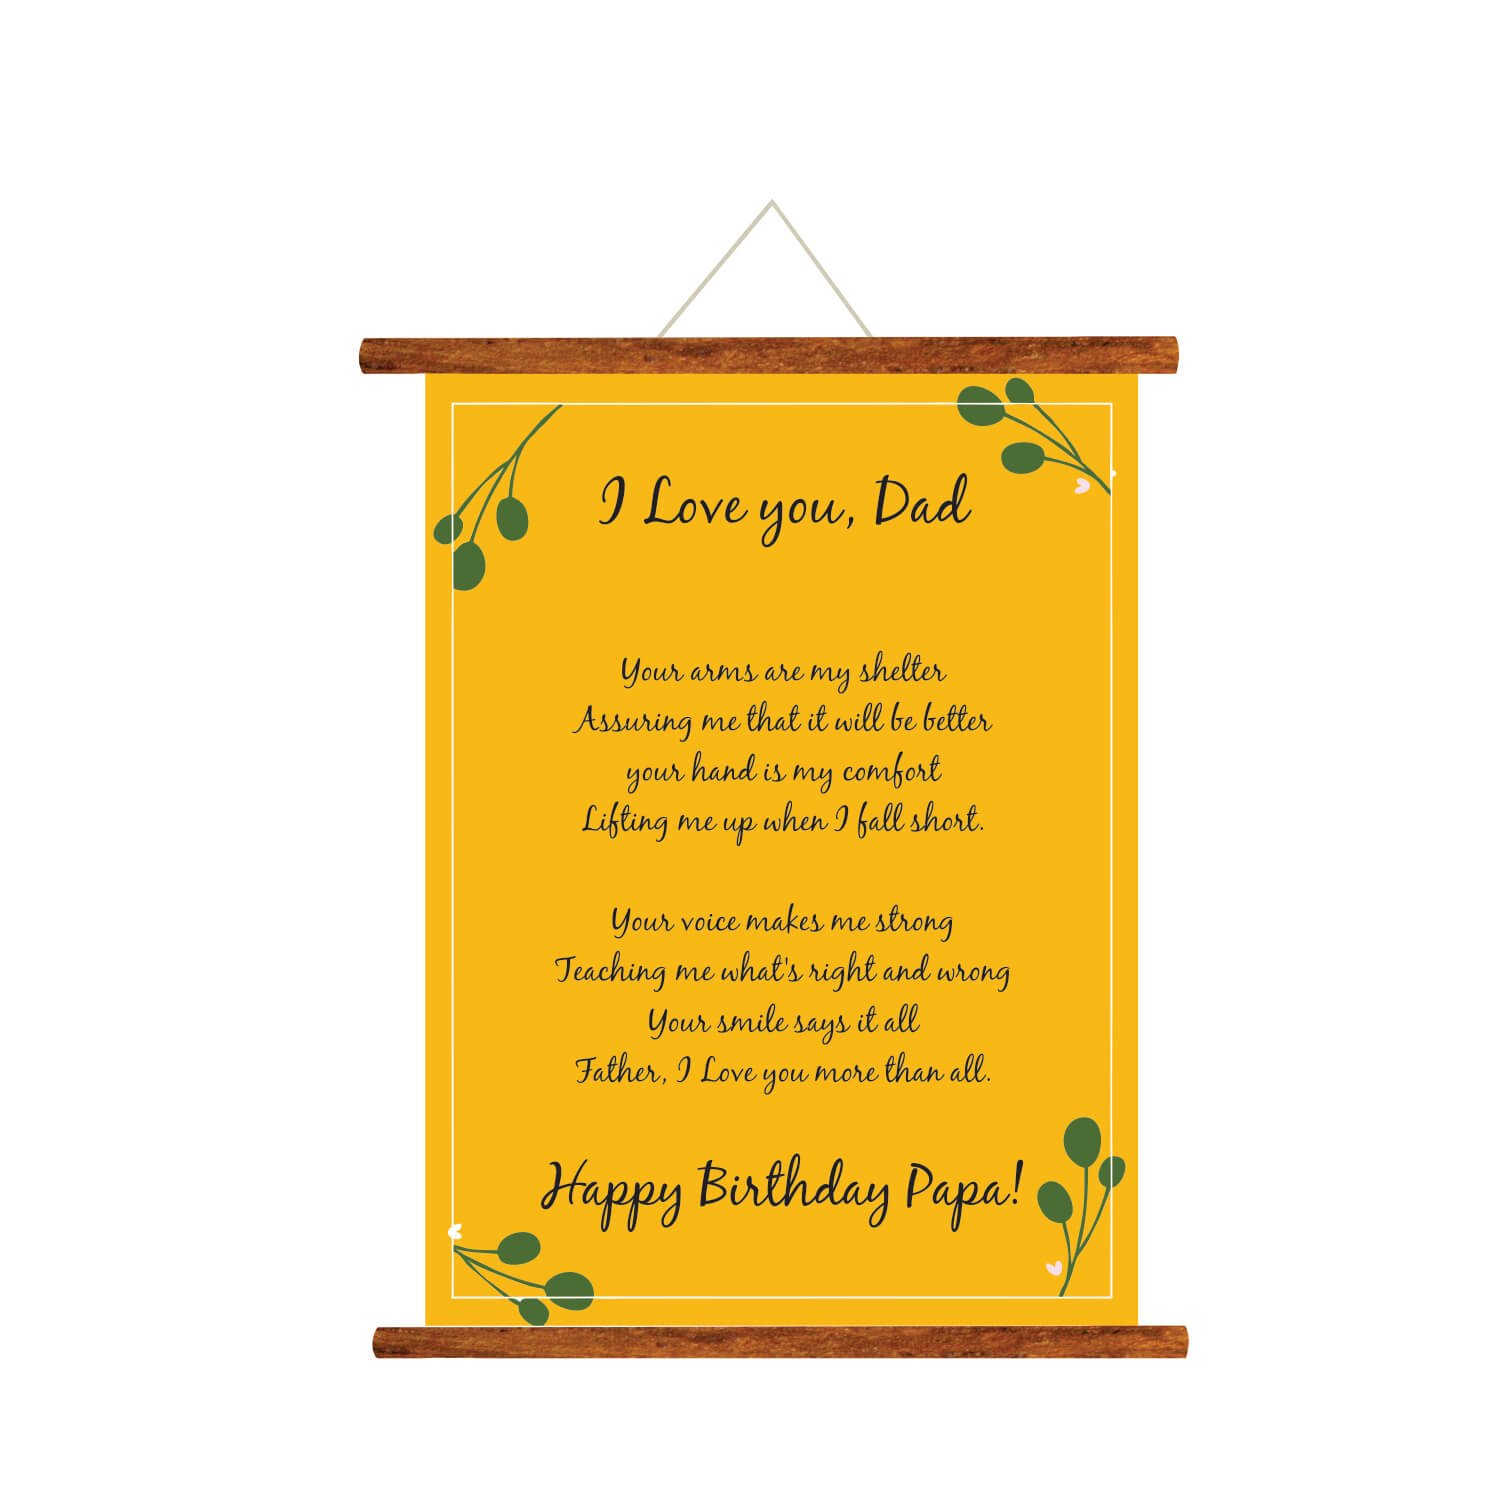 YaYa Cafe Fathers Day Greeting Cards Happy Birthday Papa Love You Dad Message Scroll Card For Wall Hanging Decor